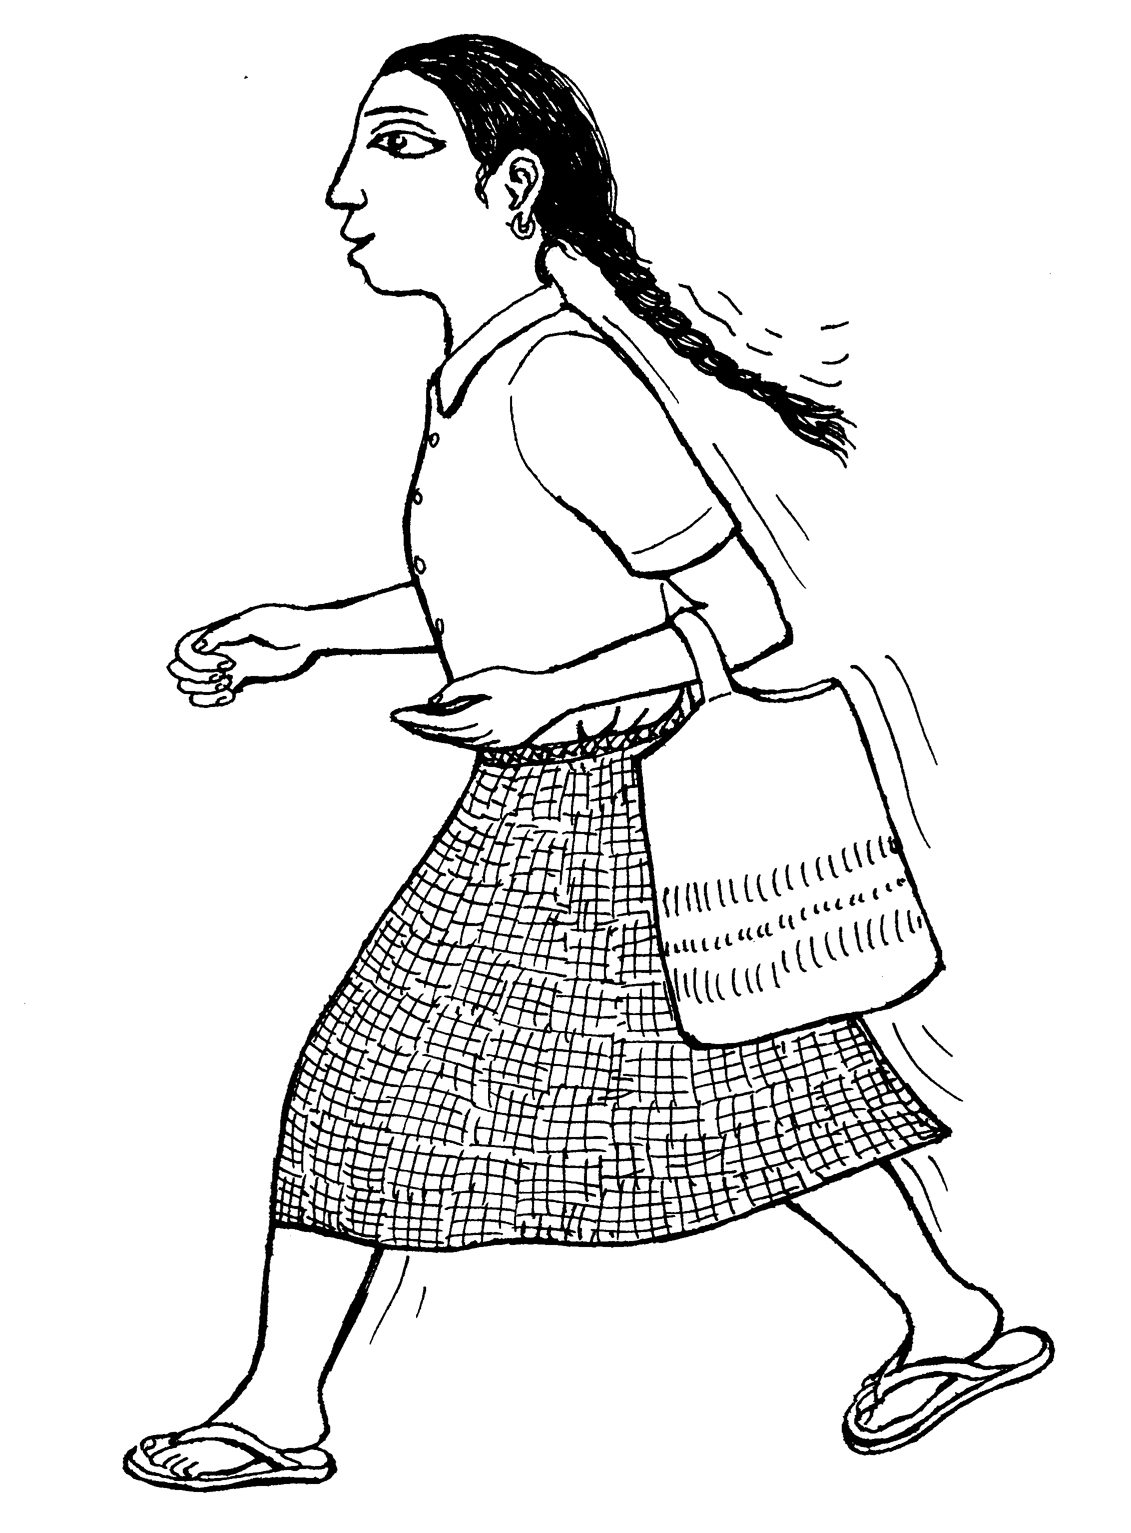 Walking Away Coloring Pages